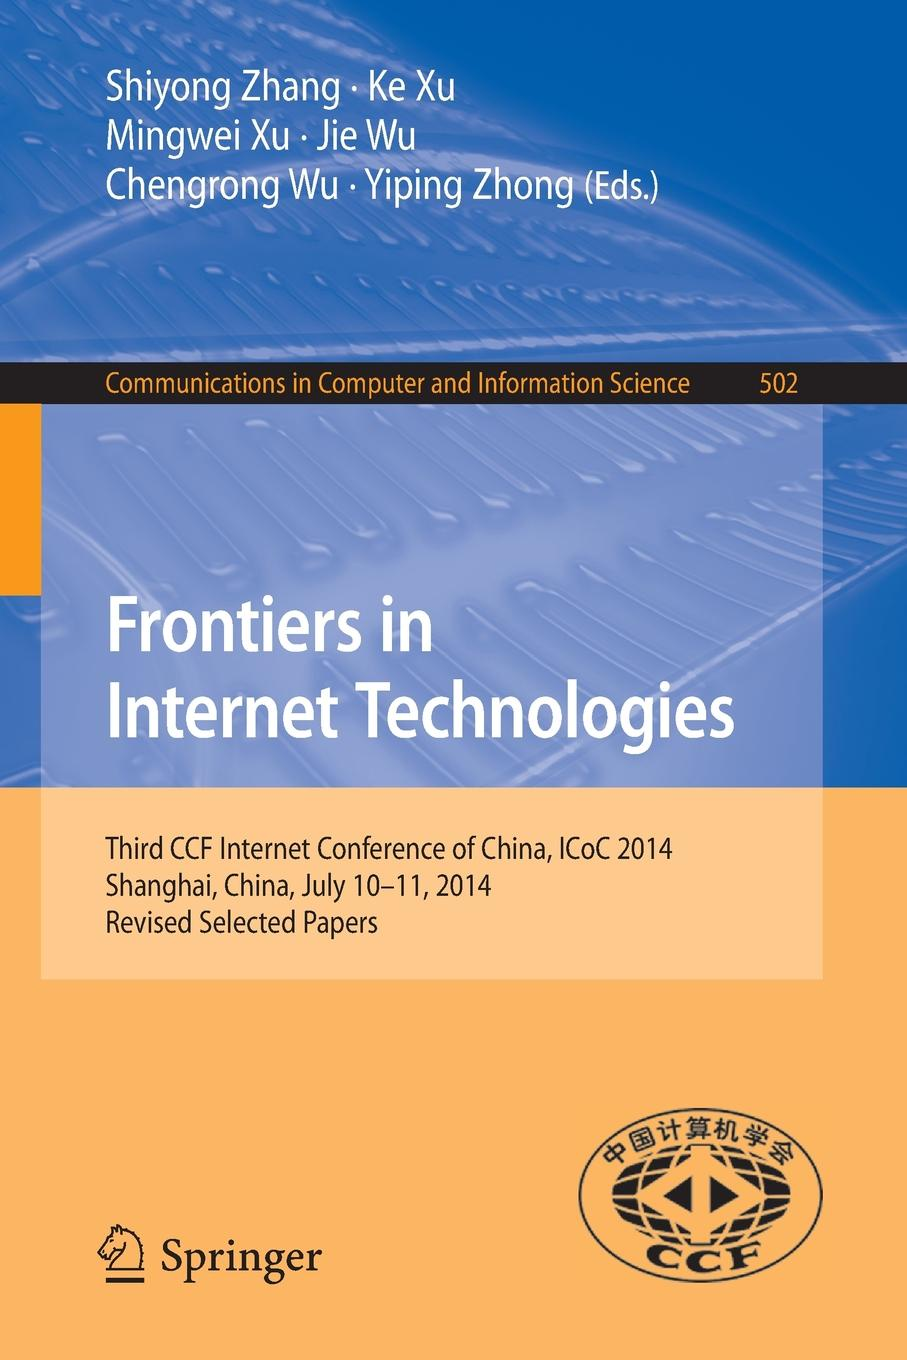 Frontiers in Internet Technologies. Third CCF Internet Conference of China, ICoC 2014, Shanghai, China, July 10-11, 2014, Revised Selected Papers китайский бутик телефонов made in china 2014 f15 w8